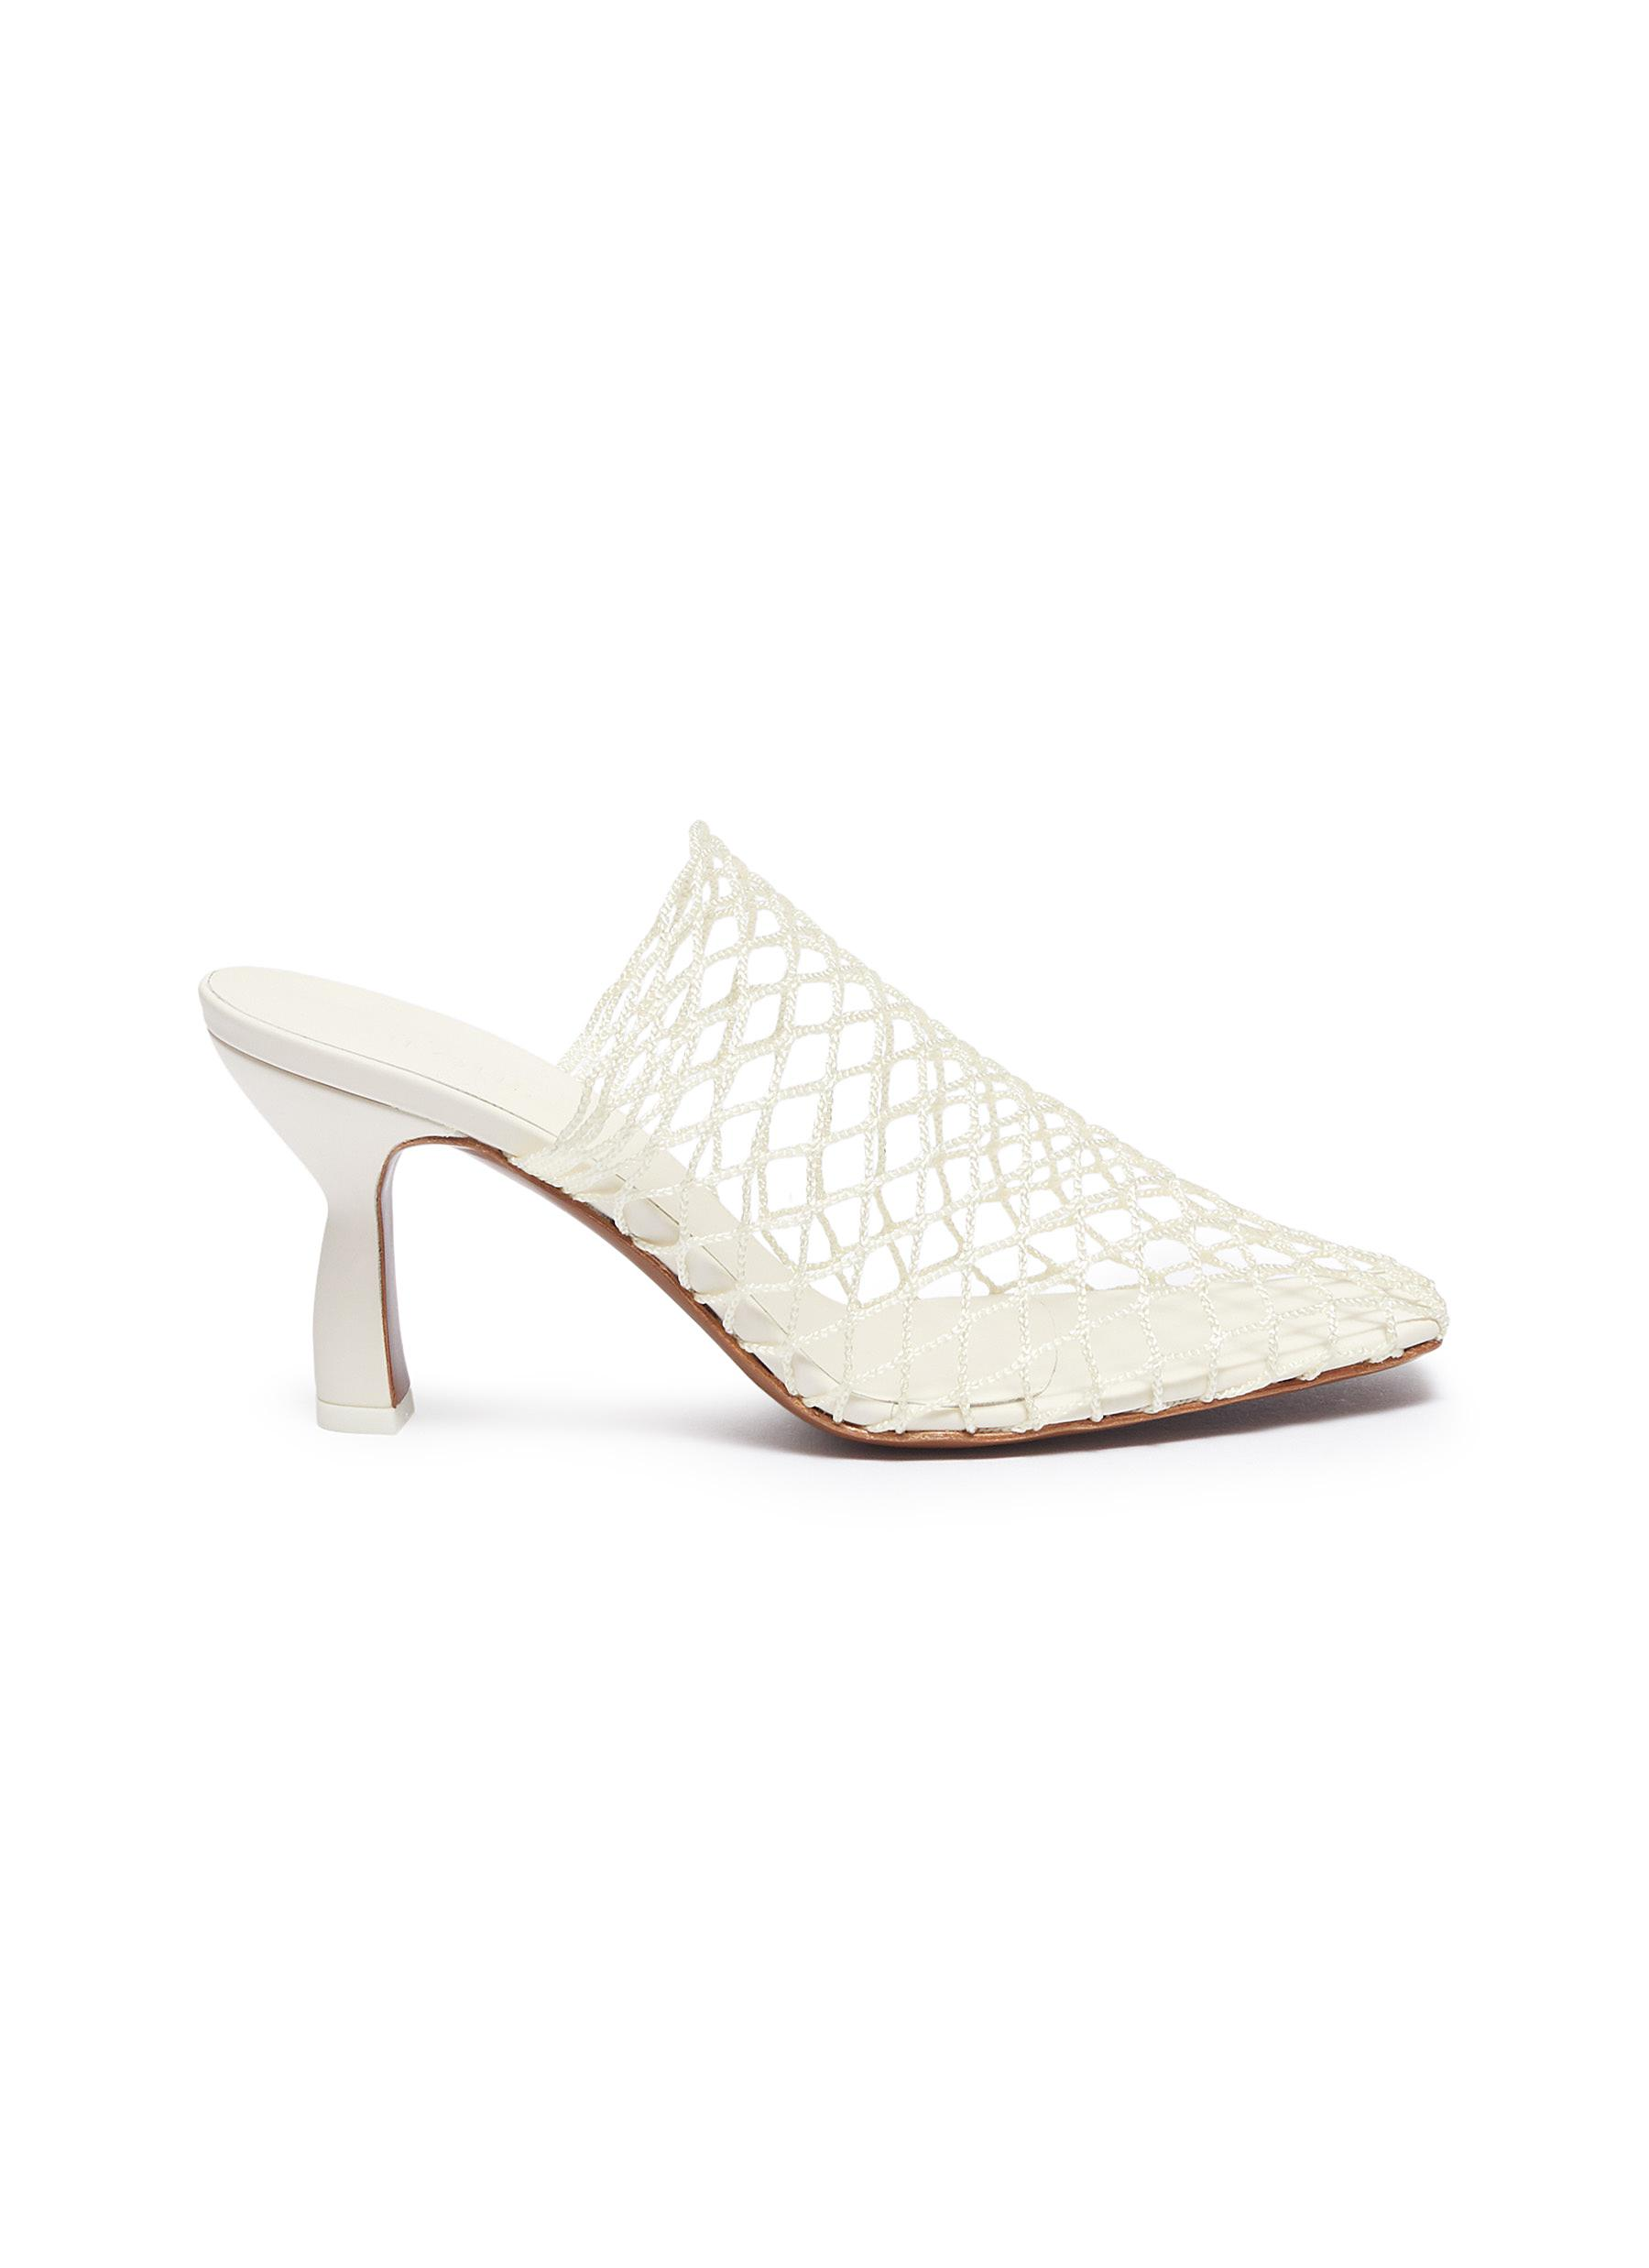 Bophy fishnet mules by Neous